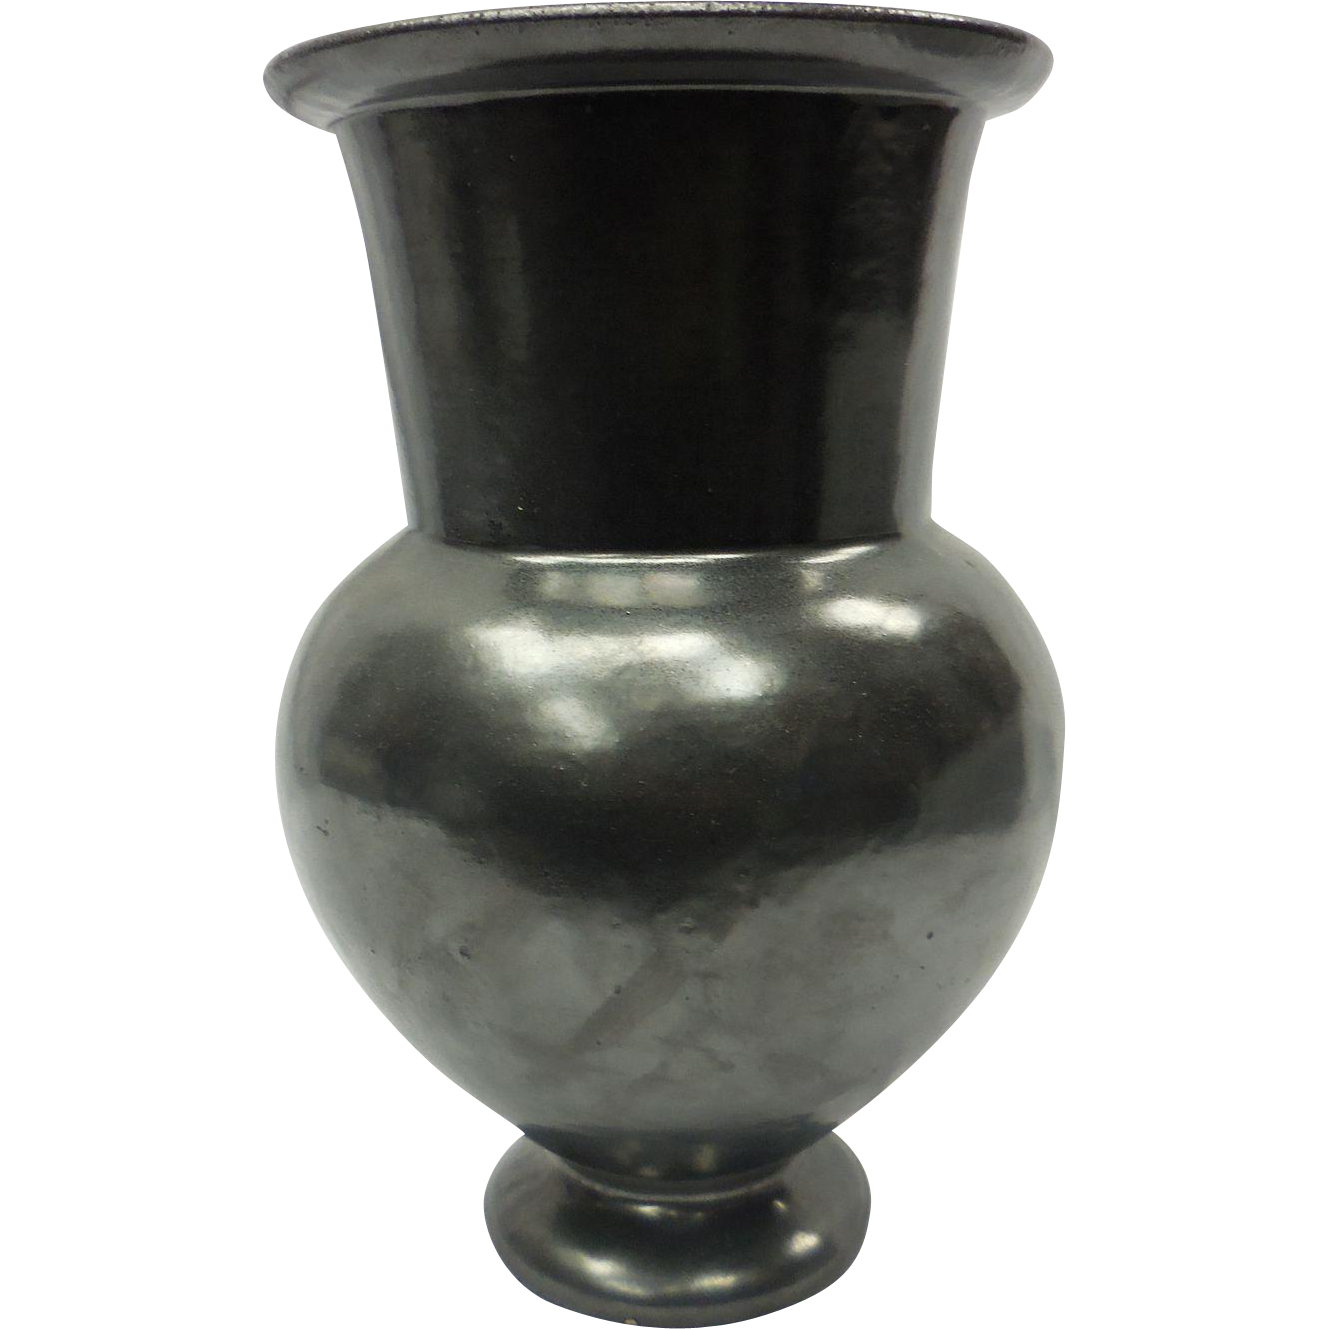 c. 1920 Rare Black Neoclassical Garden Terra Cotta Galloway Pottery Vase